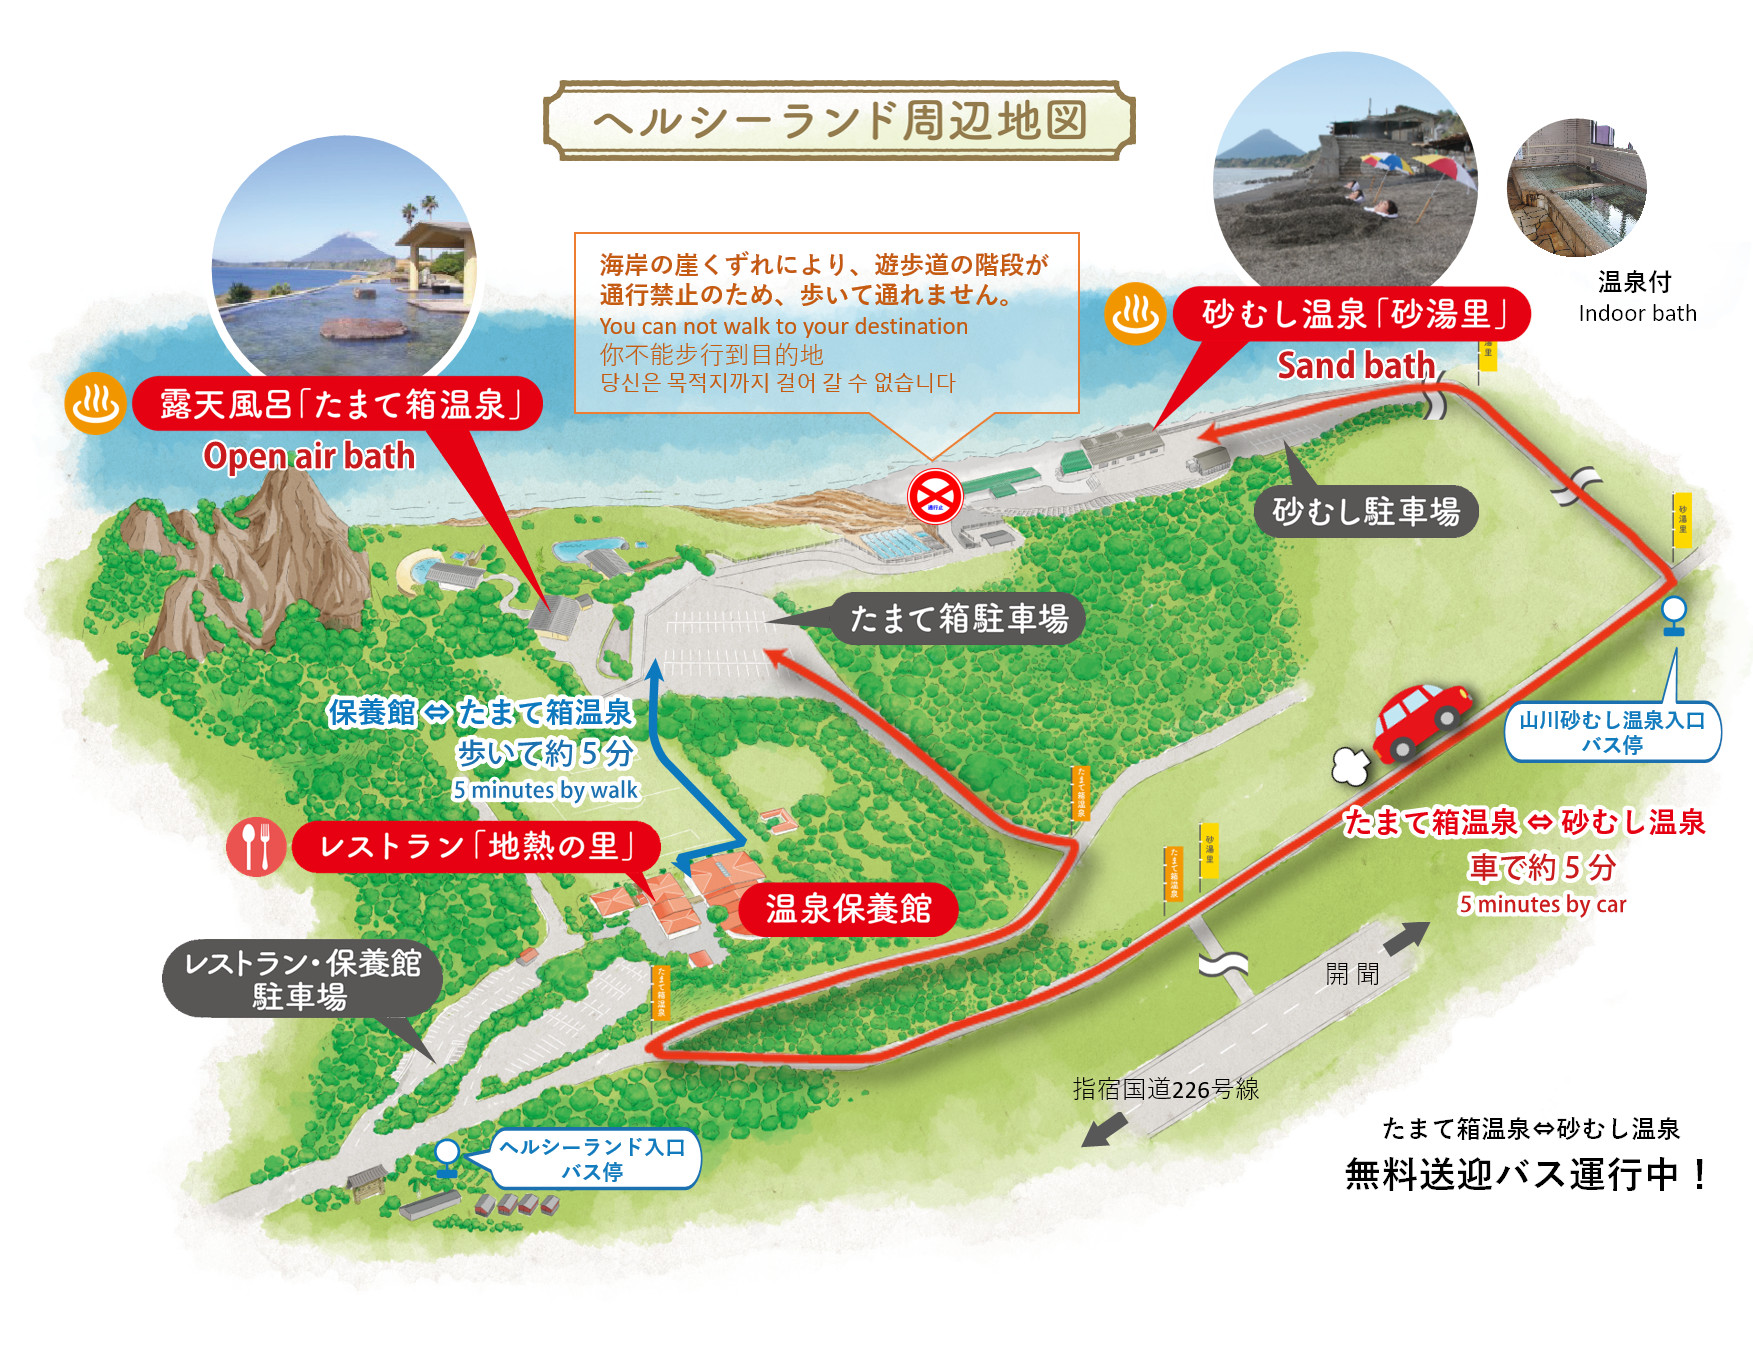 http://ppp.seika-spc.co.jp/healthy/wp-content/uploads/2019/07/healthy-MAP2.jpg